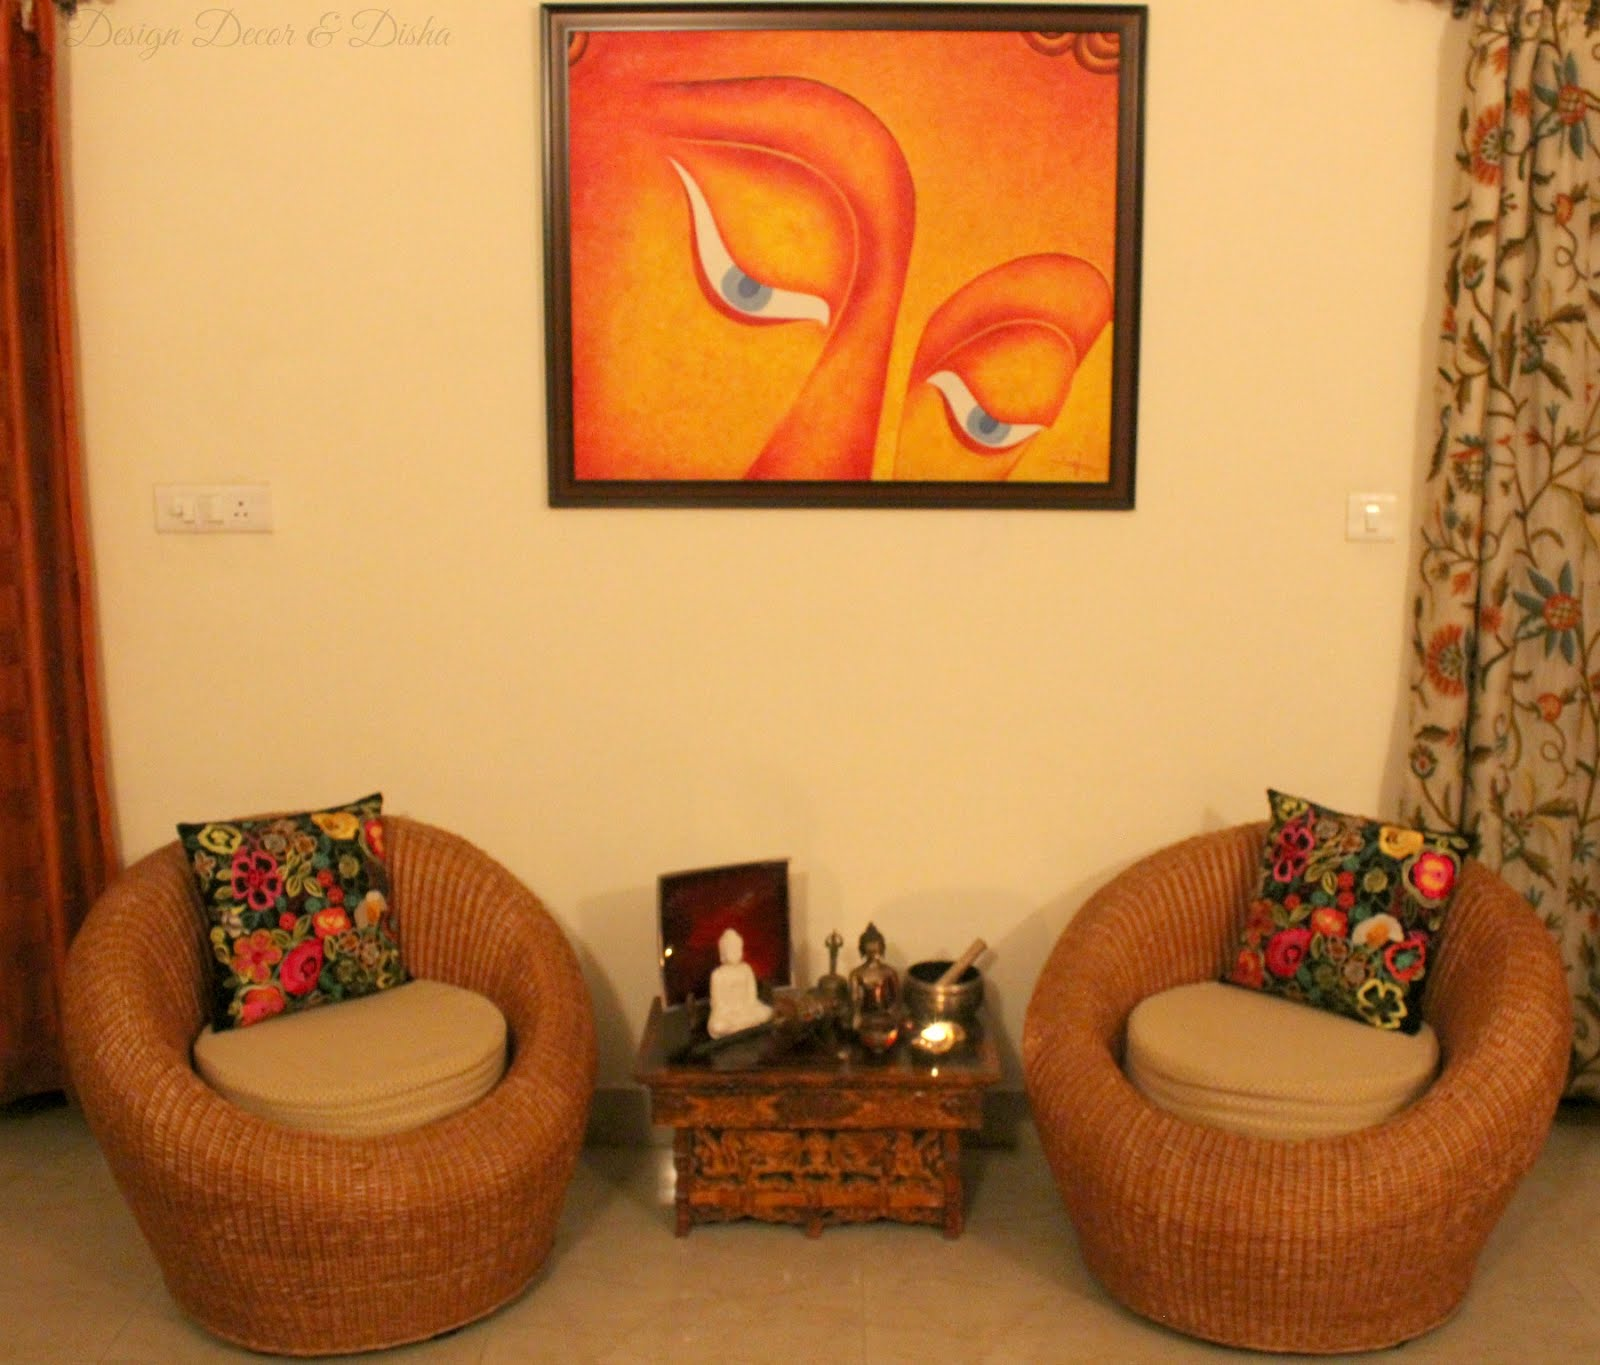 Design decor disha an indian design decor blog home for Small home decor items